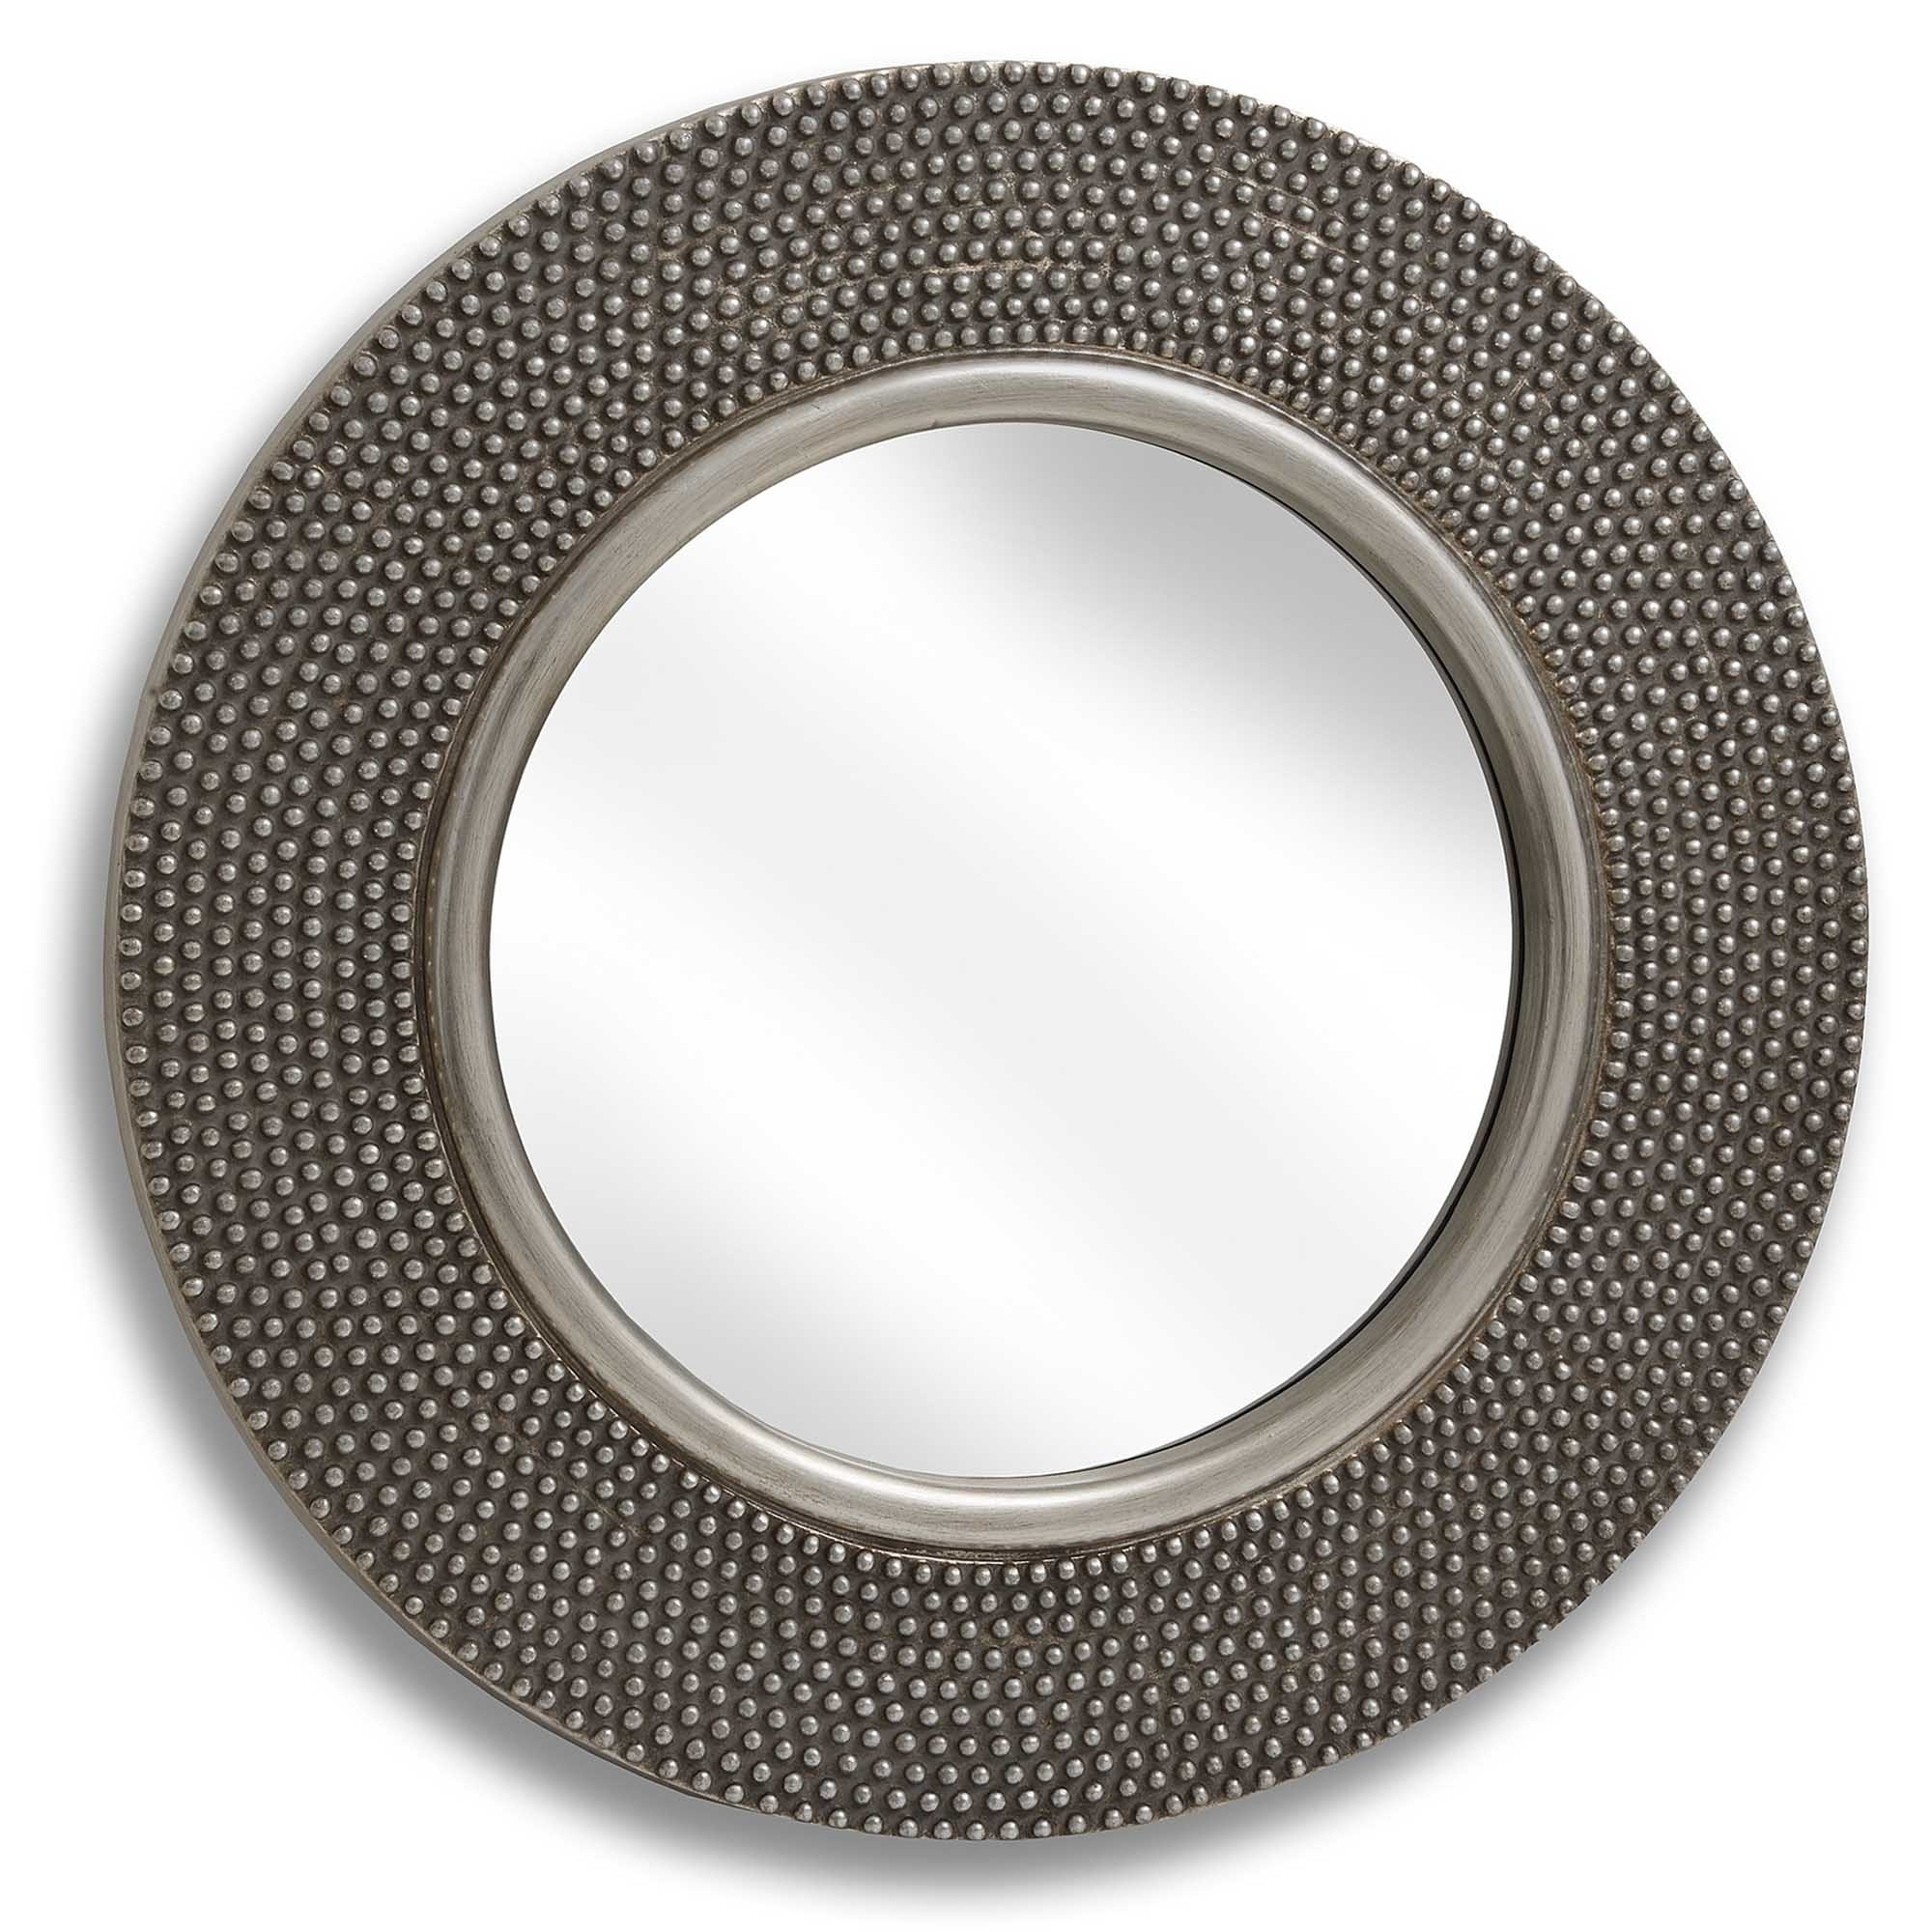 Large Round Beaded Wall Mirror Regarding Recent Beaded Wall Mirrors (View 14 of 20)